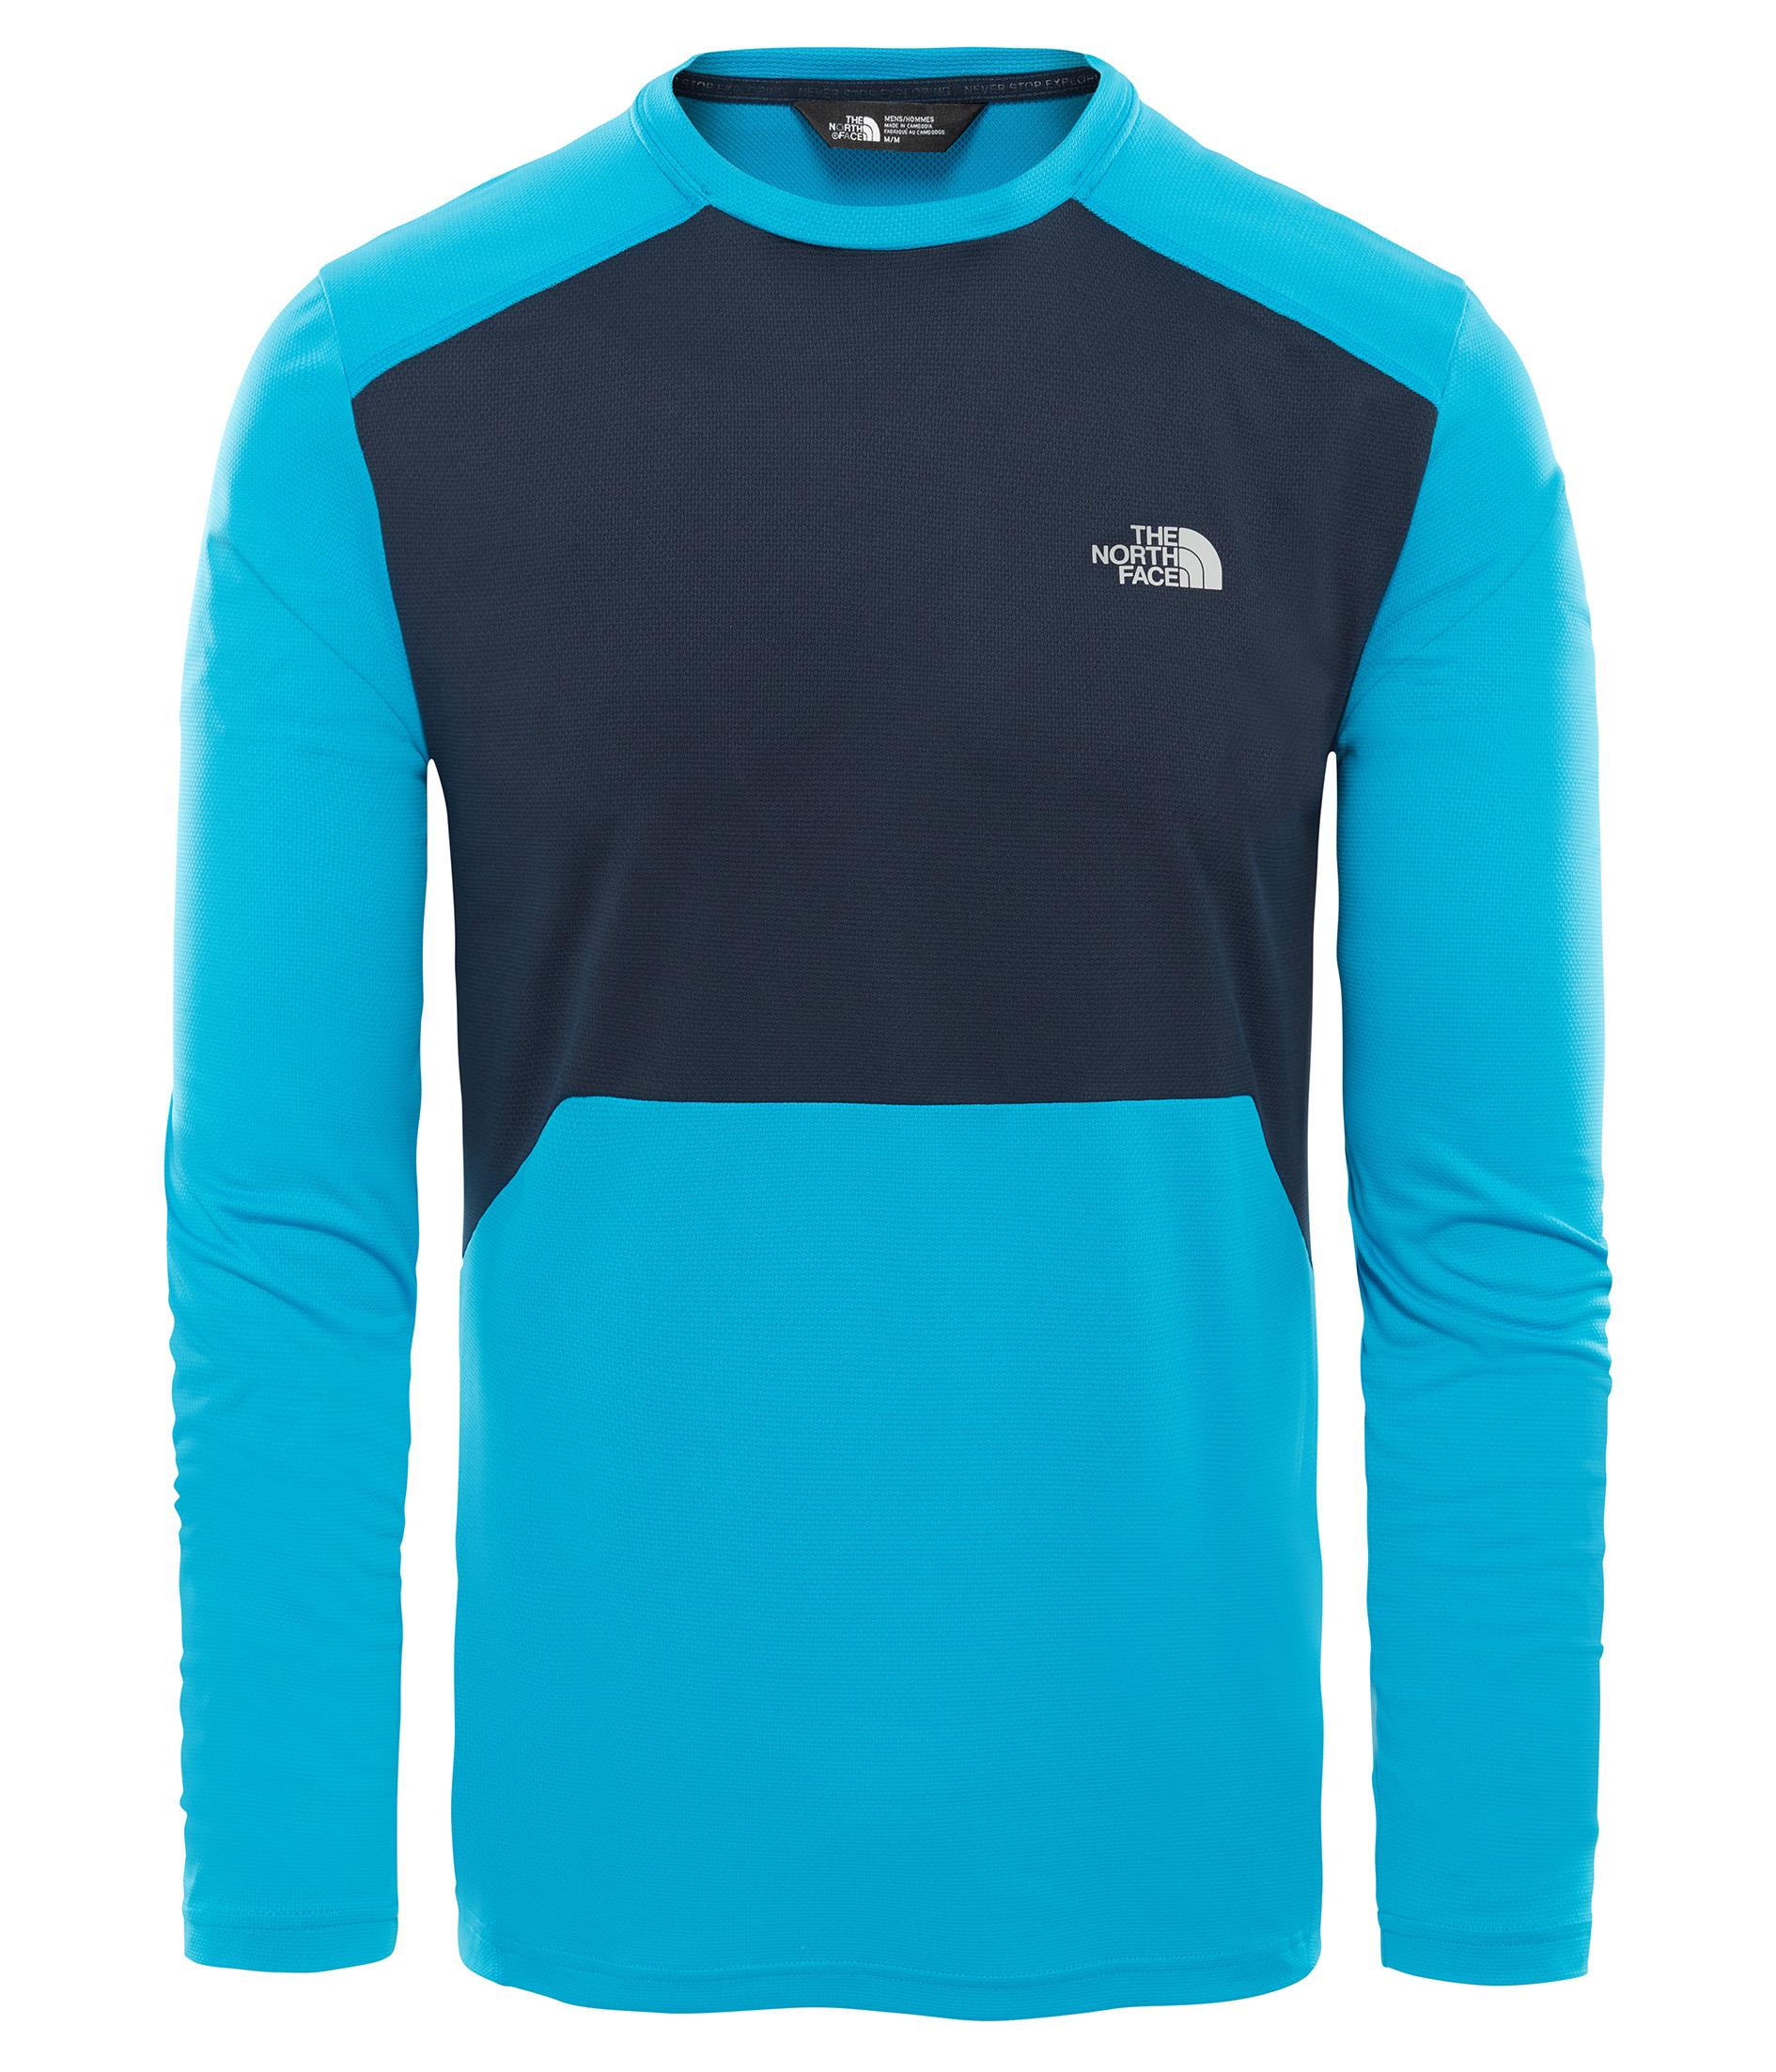 The North Face Erkek L/S Tech Tee T-Shirt T93L1XNXS